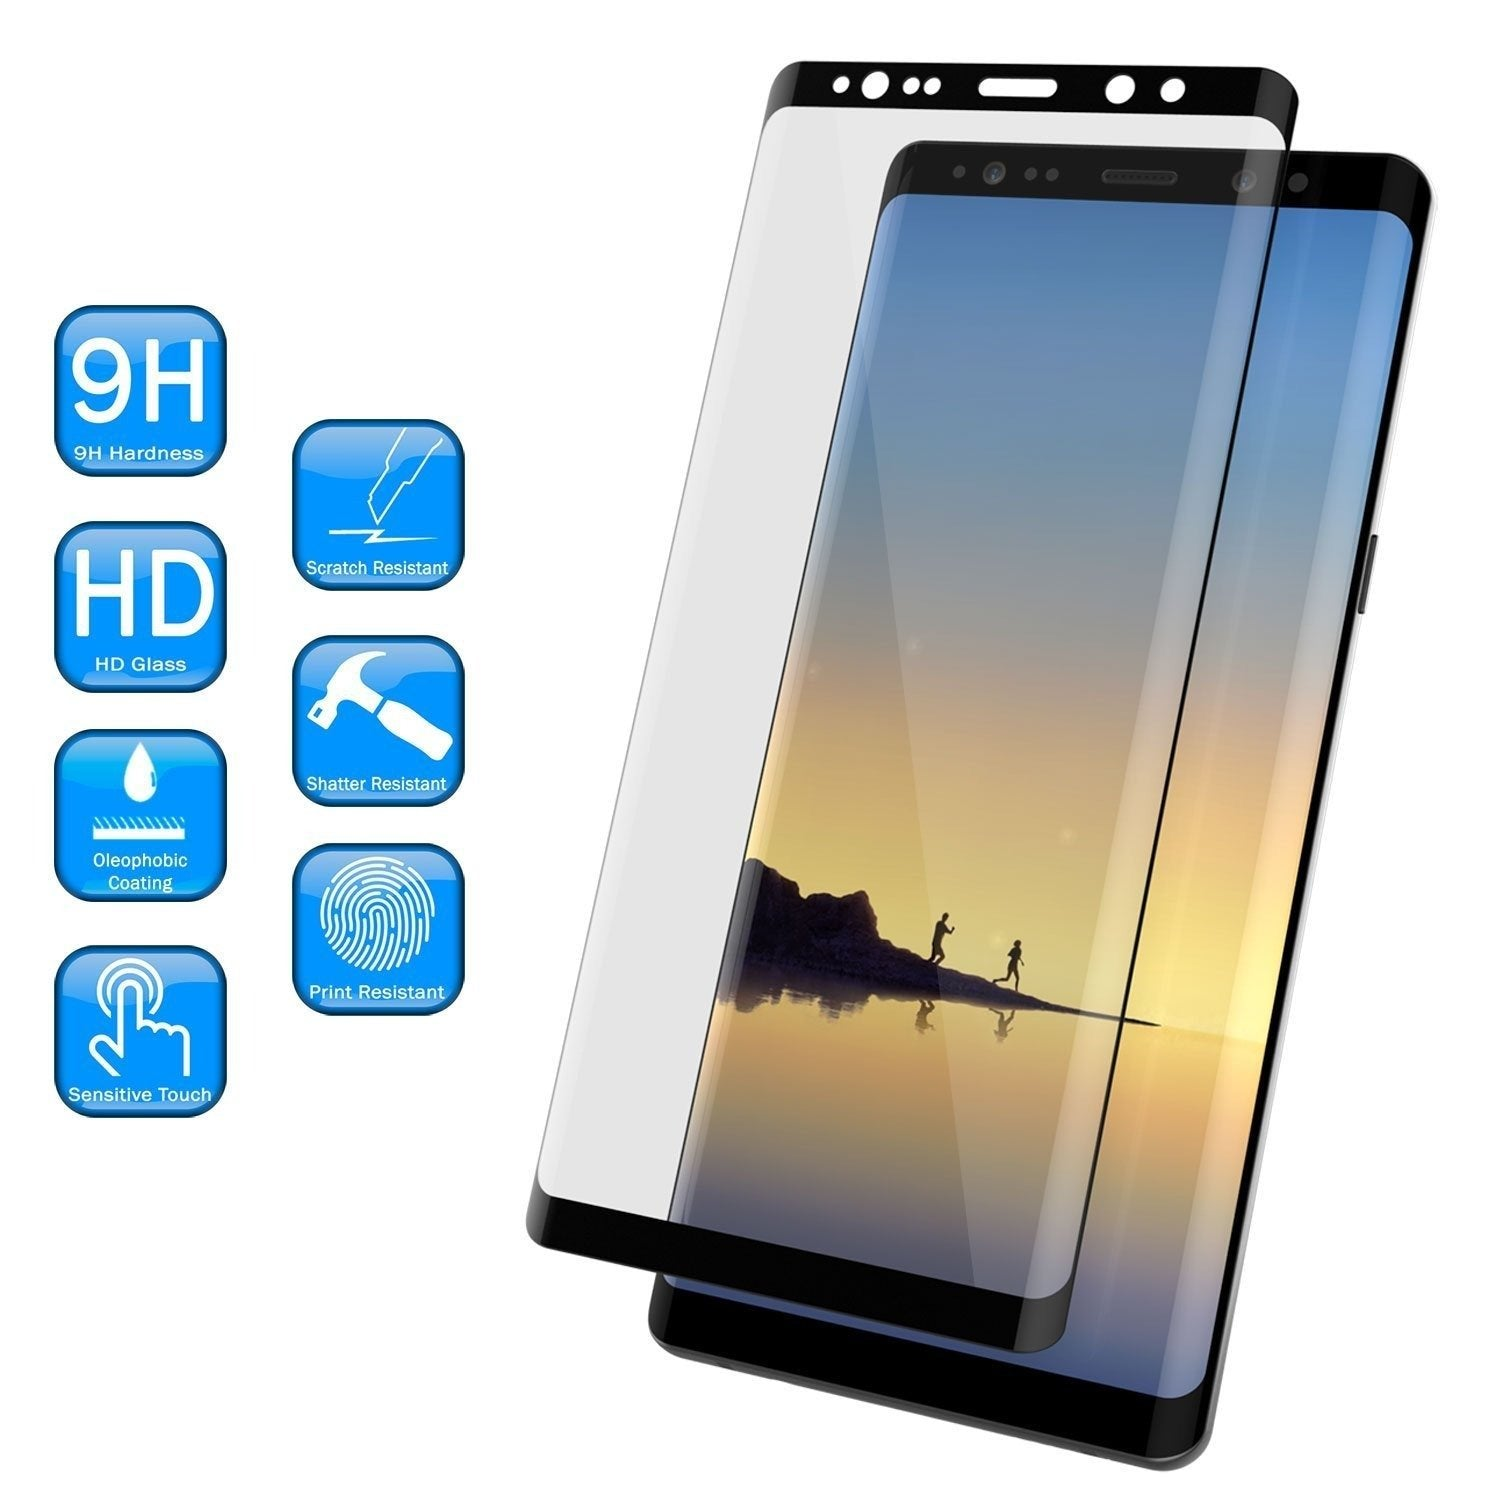 Galaxy Note 20 Ultra Black Punkcase Glass SHIELD Tempered Glass Screen Protector 0.33mm Thick 9H Glass